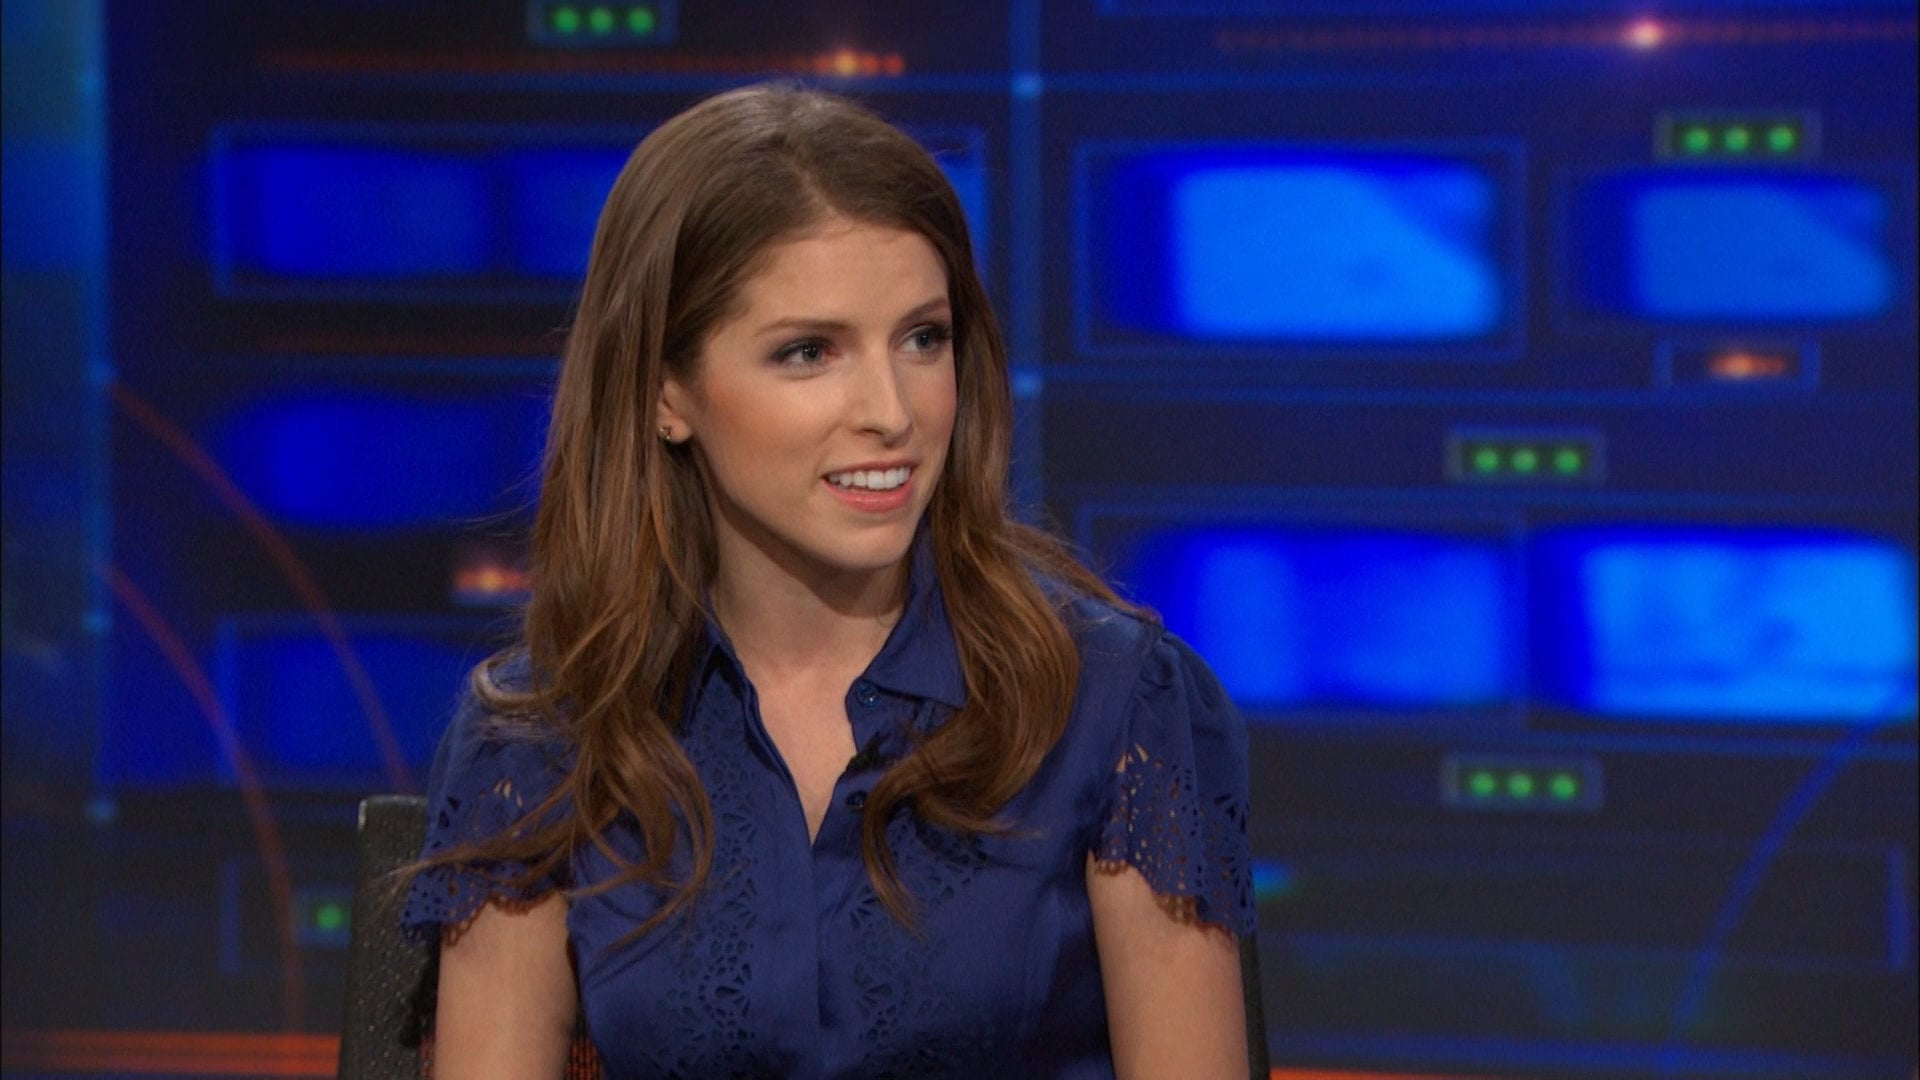 The Daily Show with Trevor Noah - Season 20 Episode 39 : Anna Kendrick (1970)